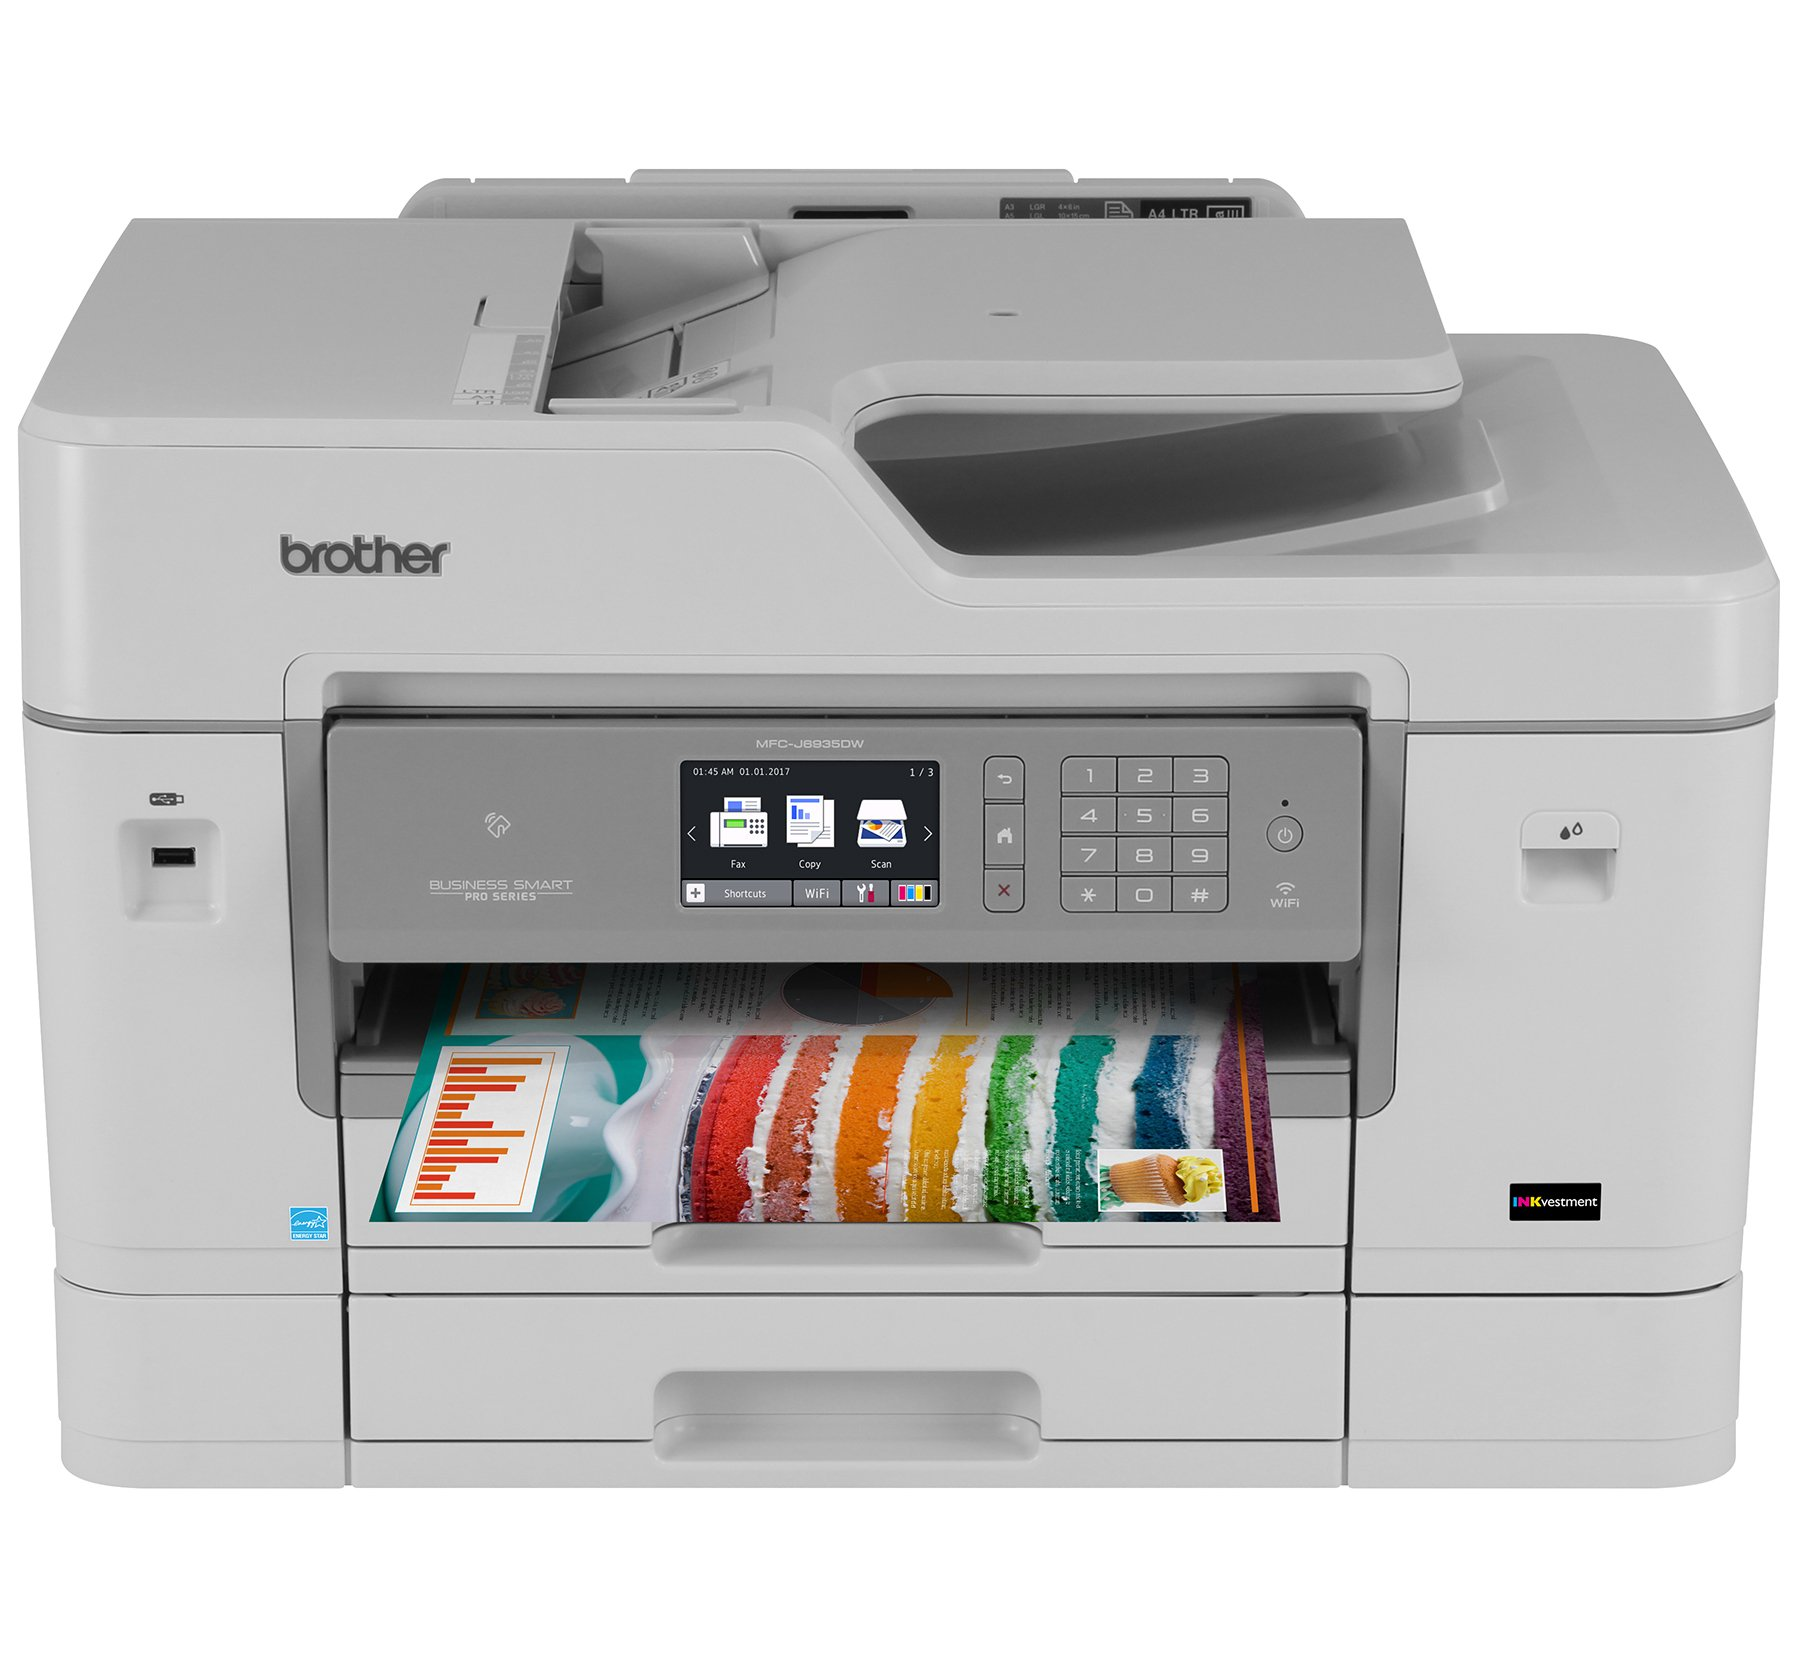 Brother Printer MFCJ6935DW Wireless Color Printer with Scanner, Copier & Fax, Amazon Dash Replenishment Enabled by Brother